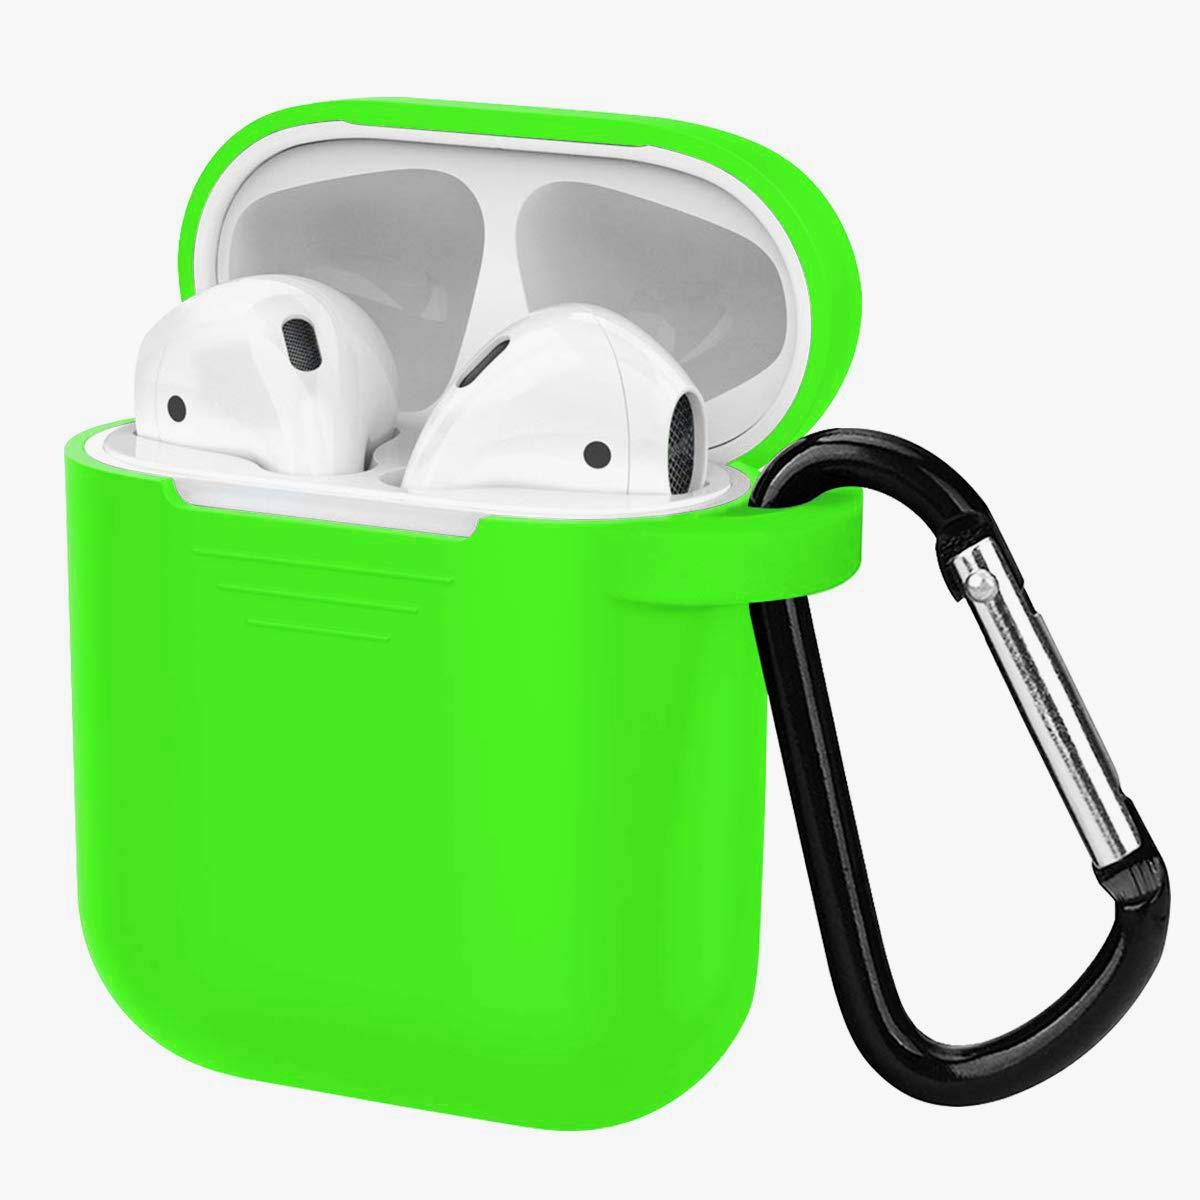 Compatible for AirPods case with Keychain Stripe Shape AirPods Case Green 1